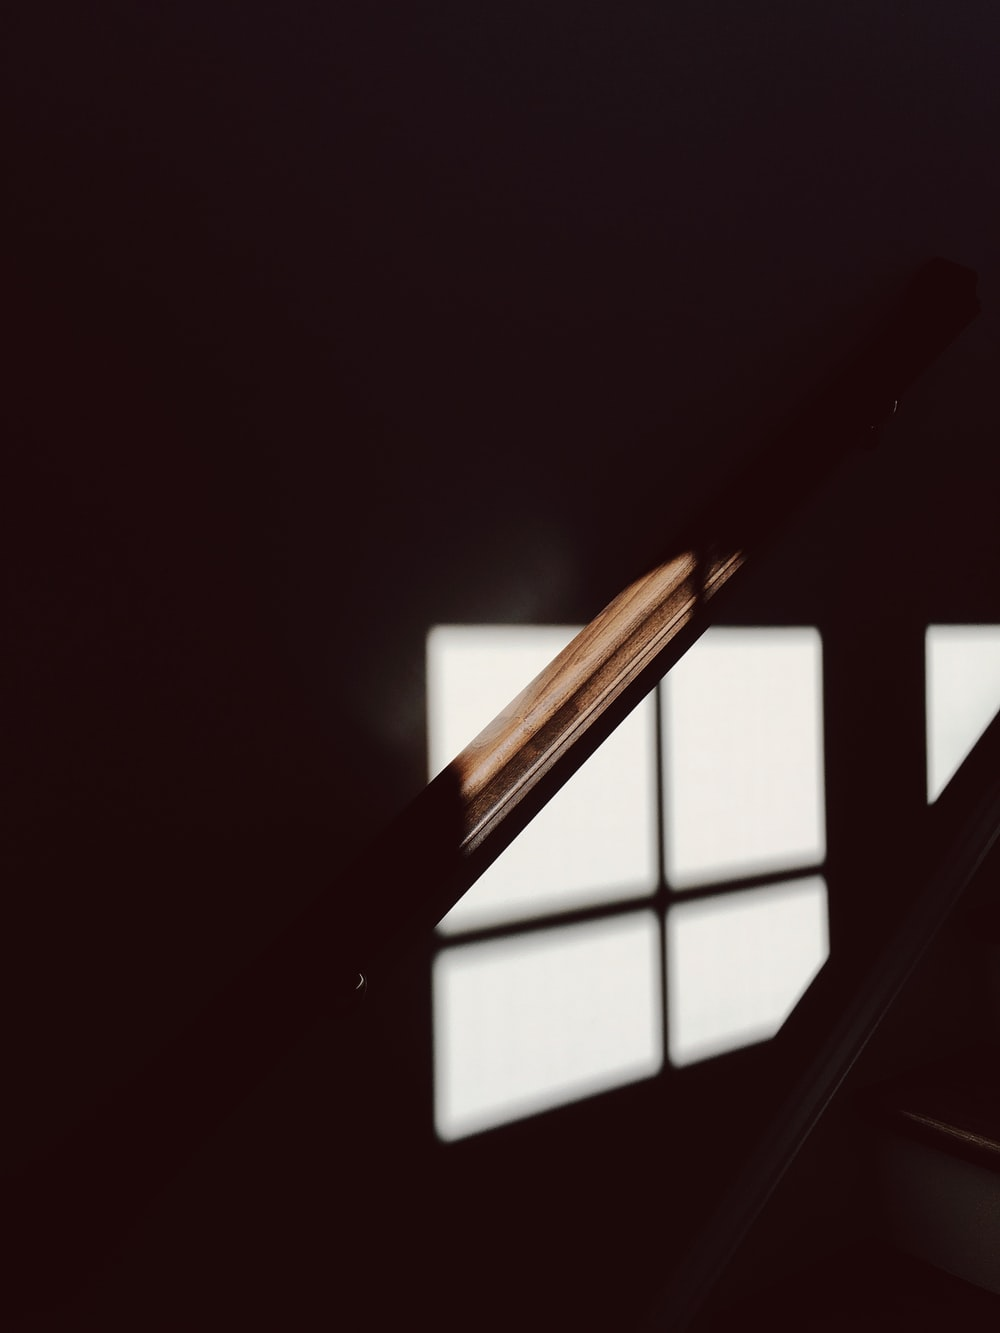 A dim shot of a wooden bannister illuminated by faint light from the window